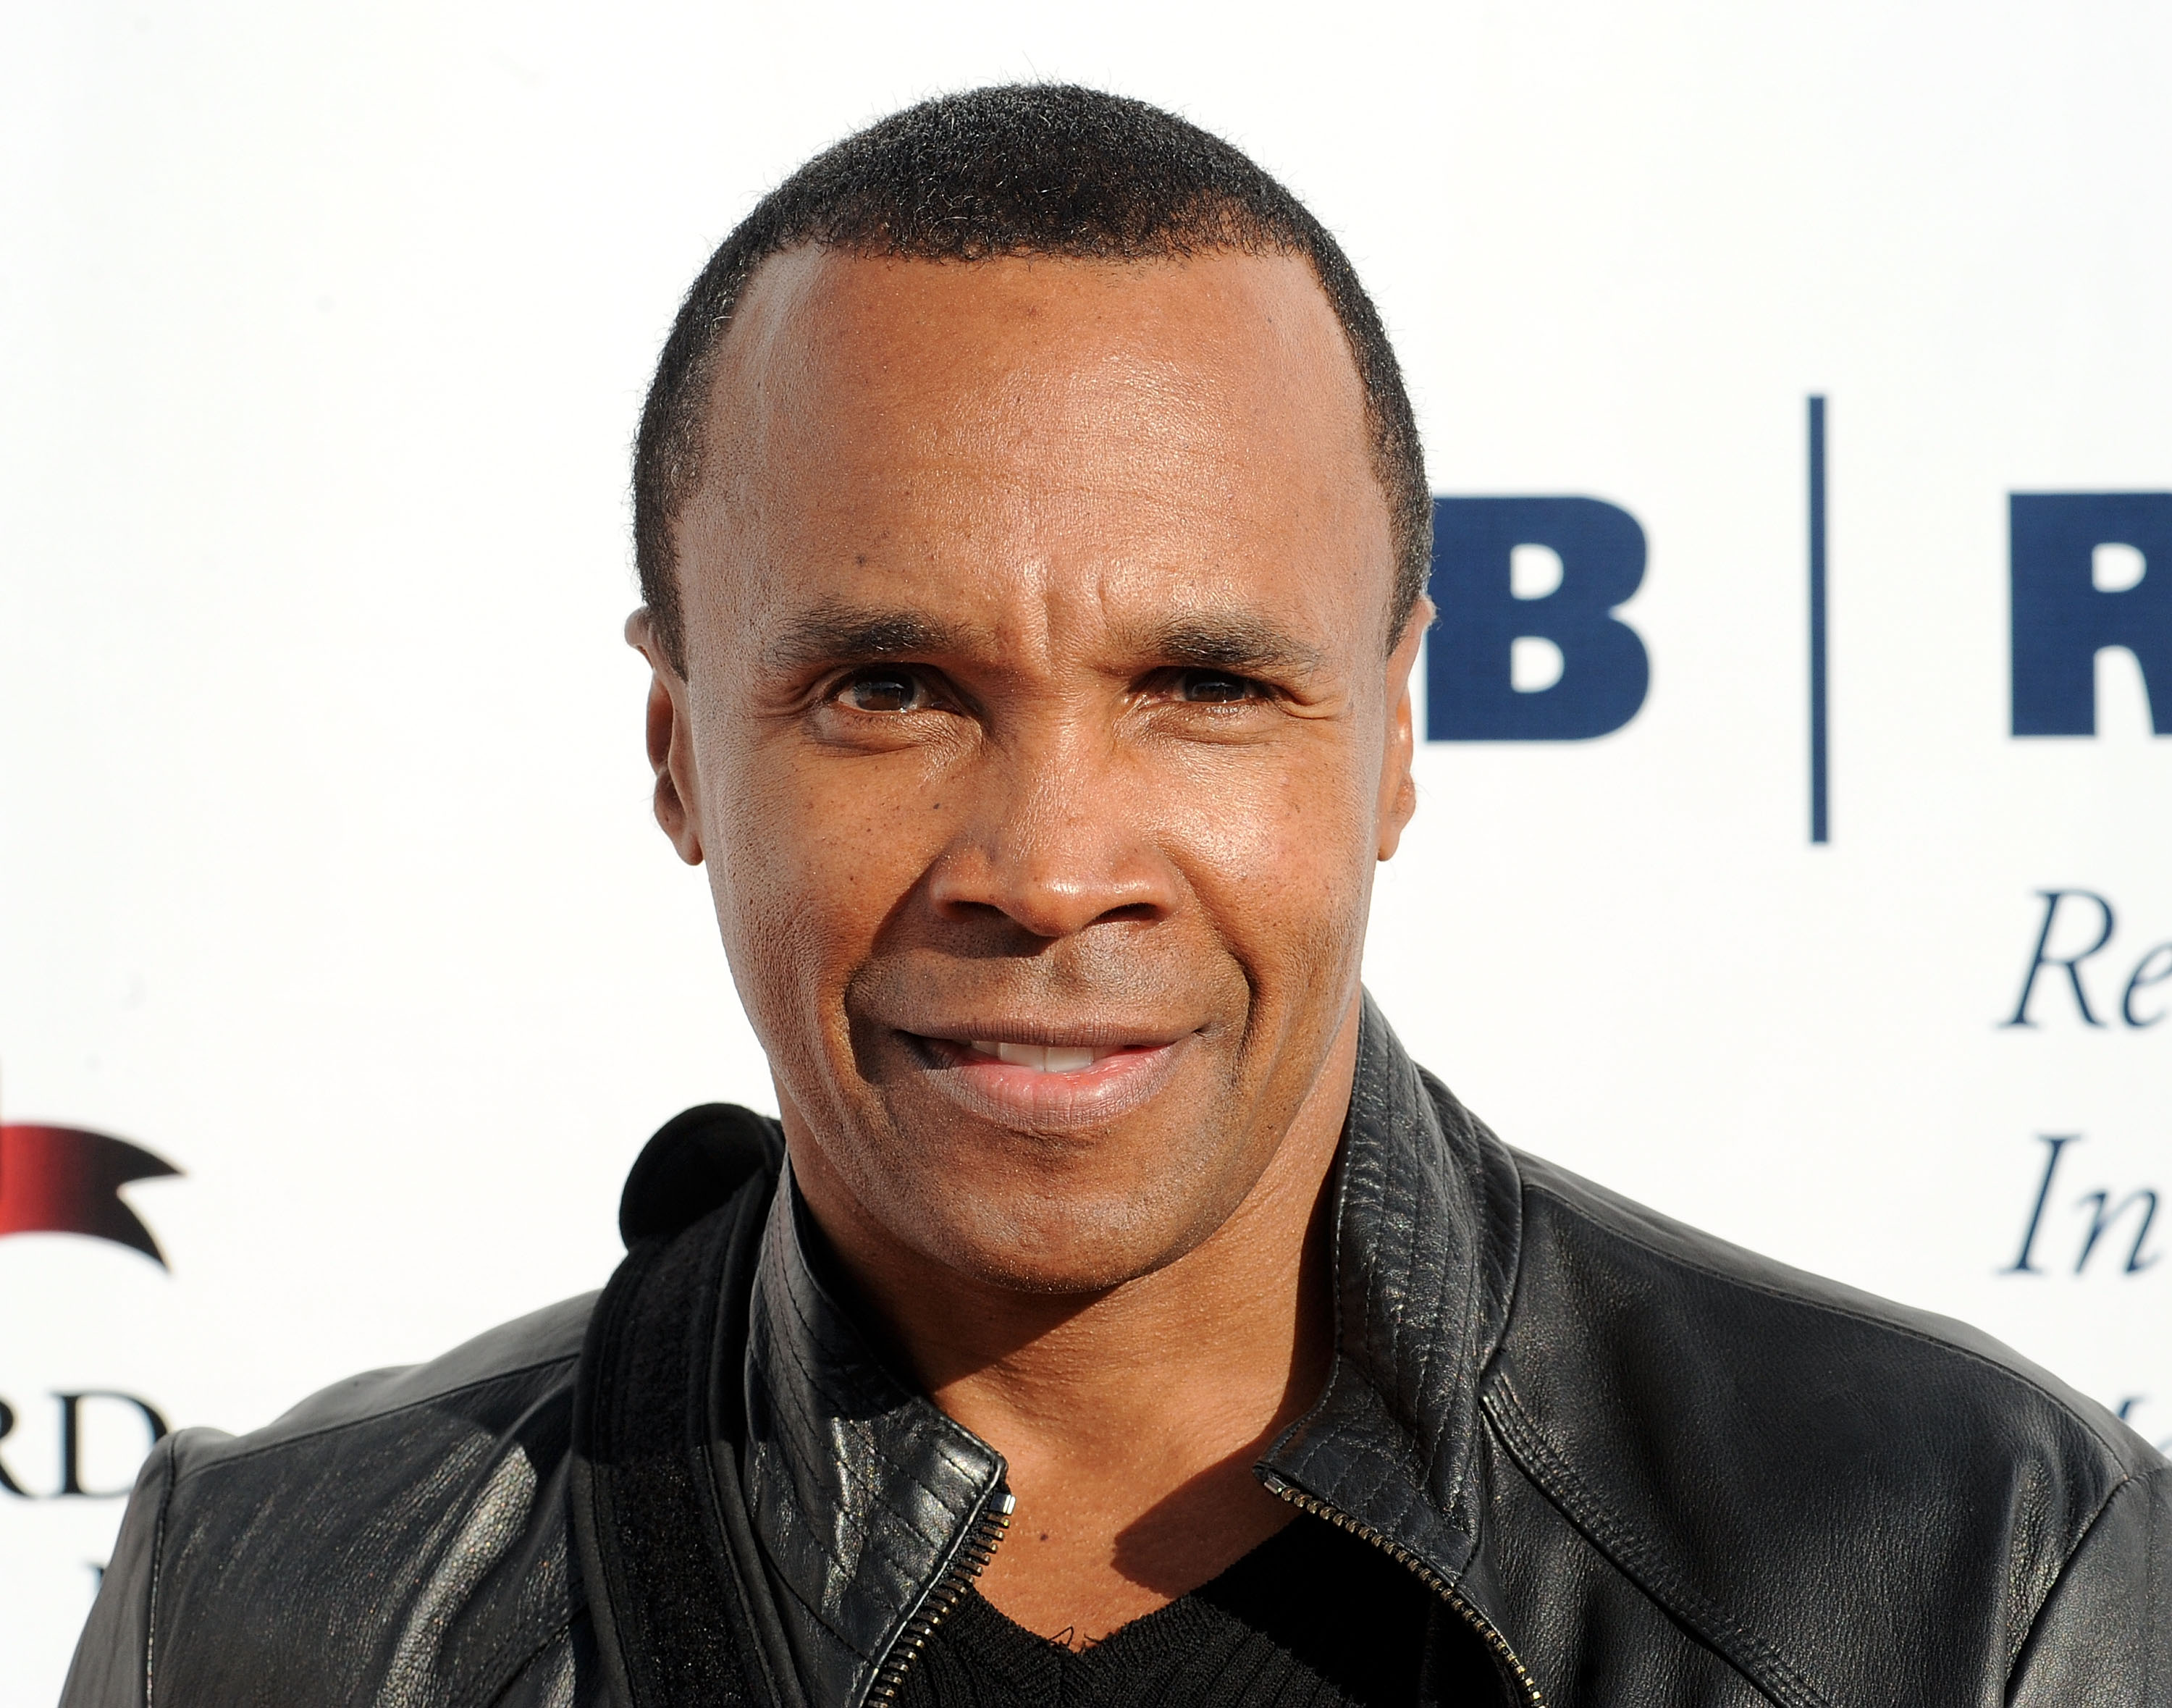 Sugar Ray Leonard smiles for a photo at a charity event